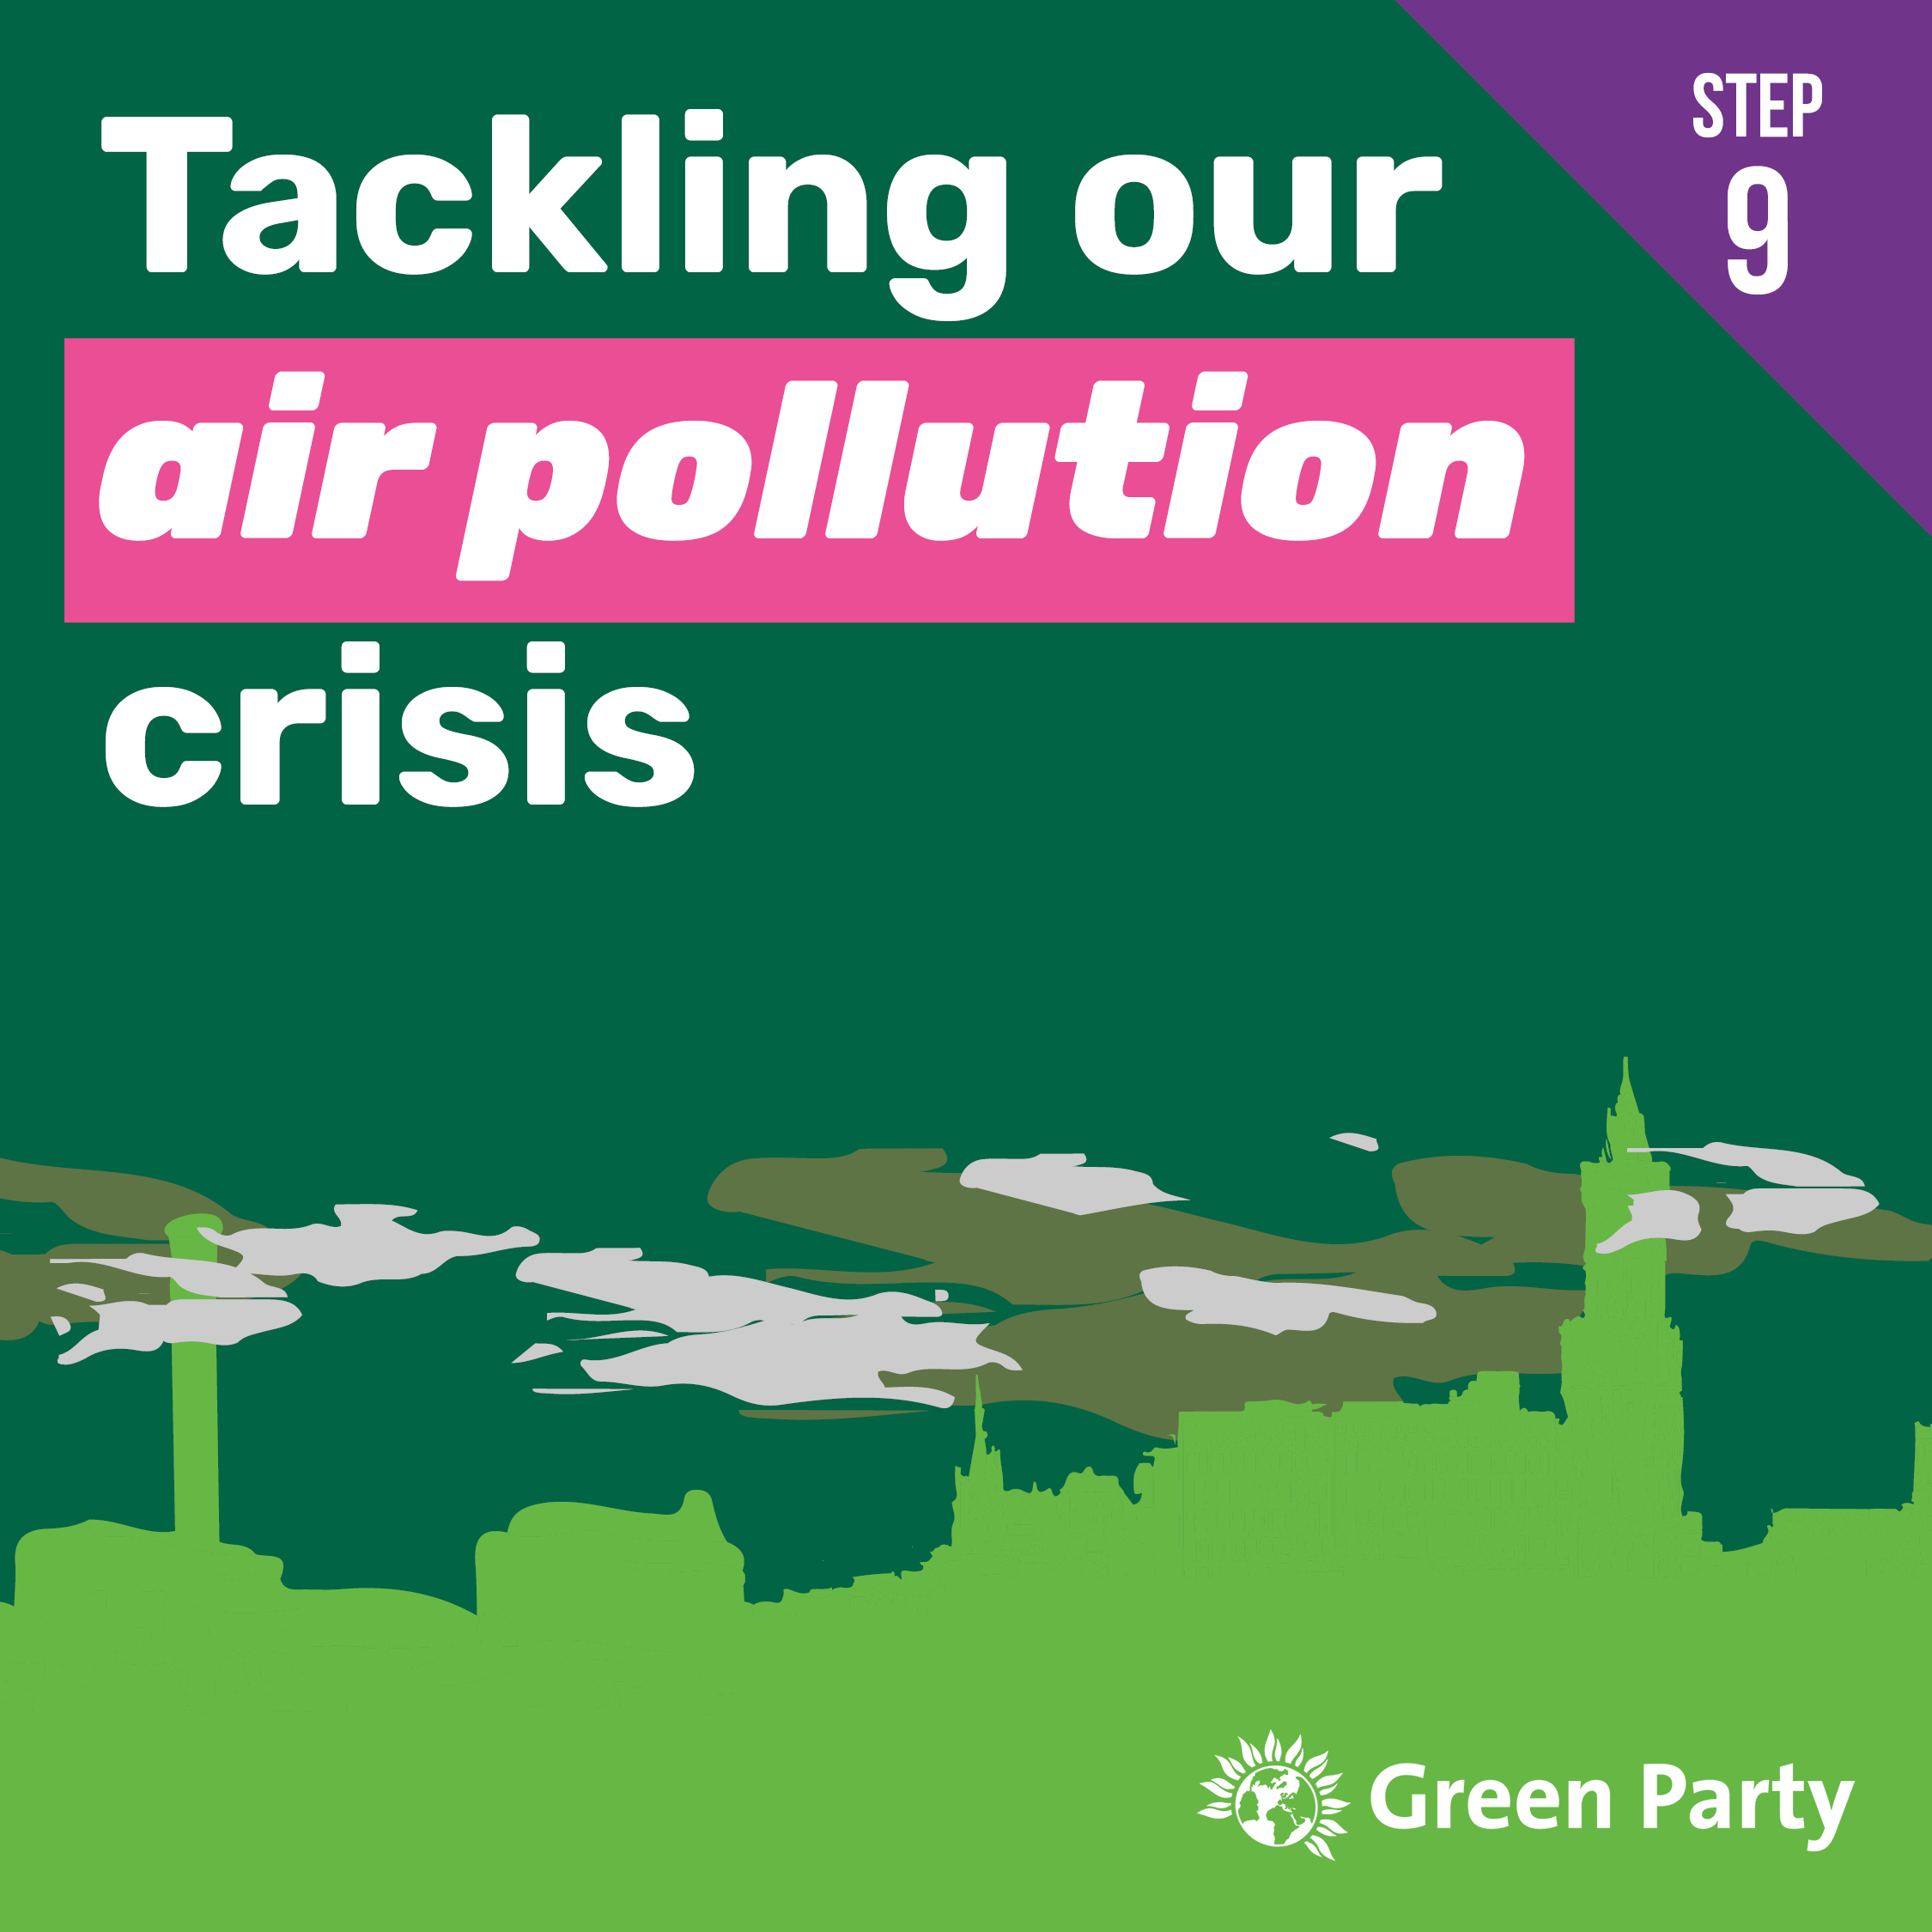 Step 9 - Tackling our air pollution crisis [Facebook & Instagram]